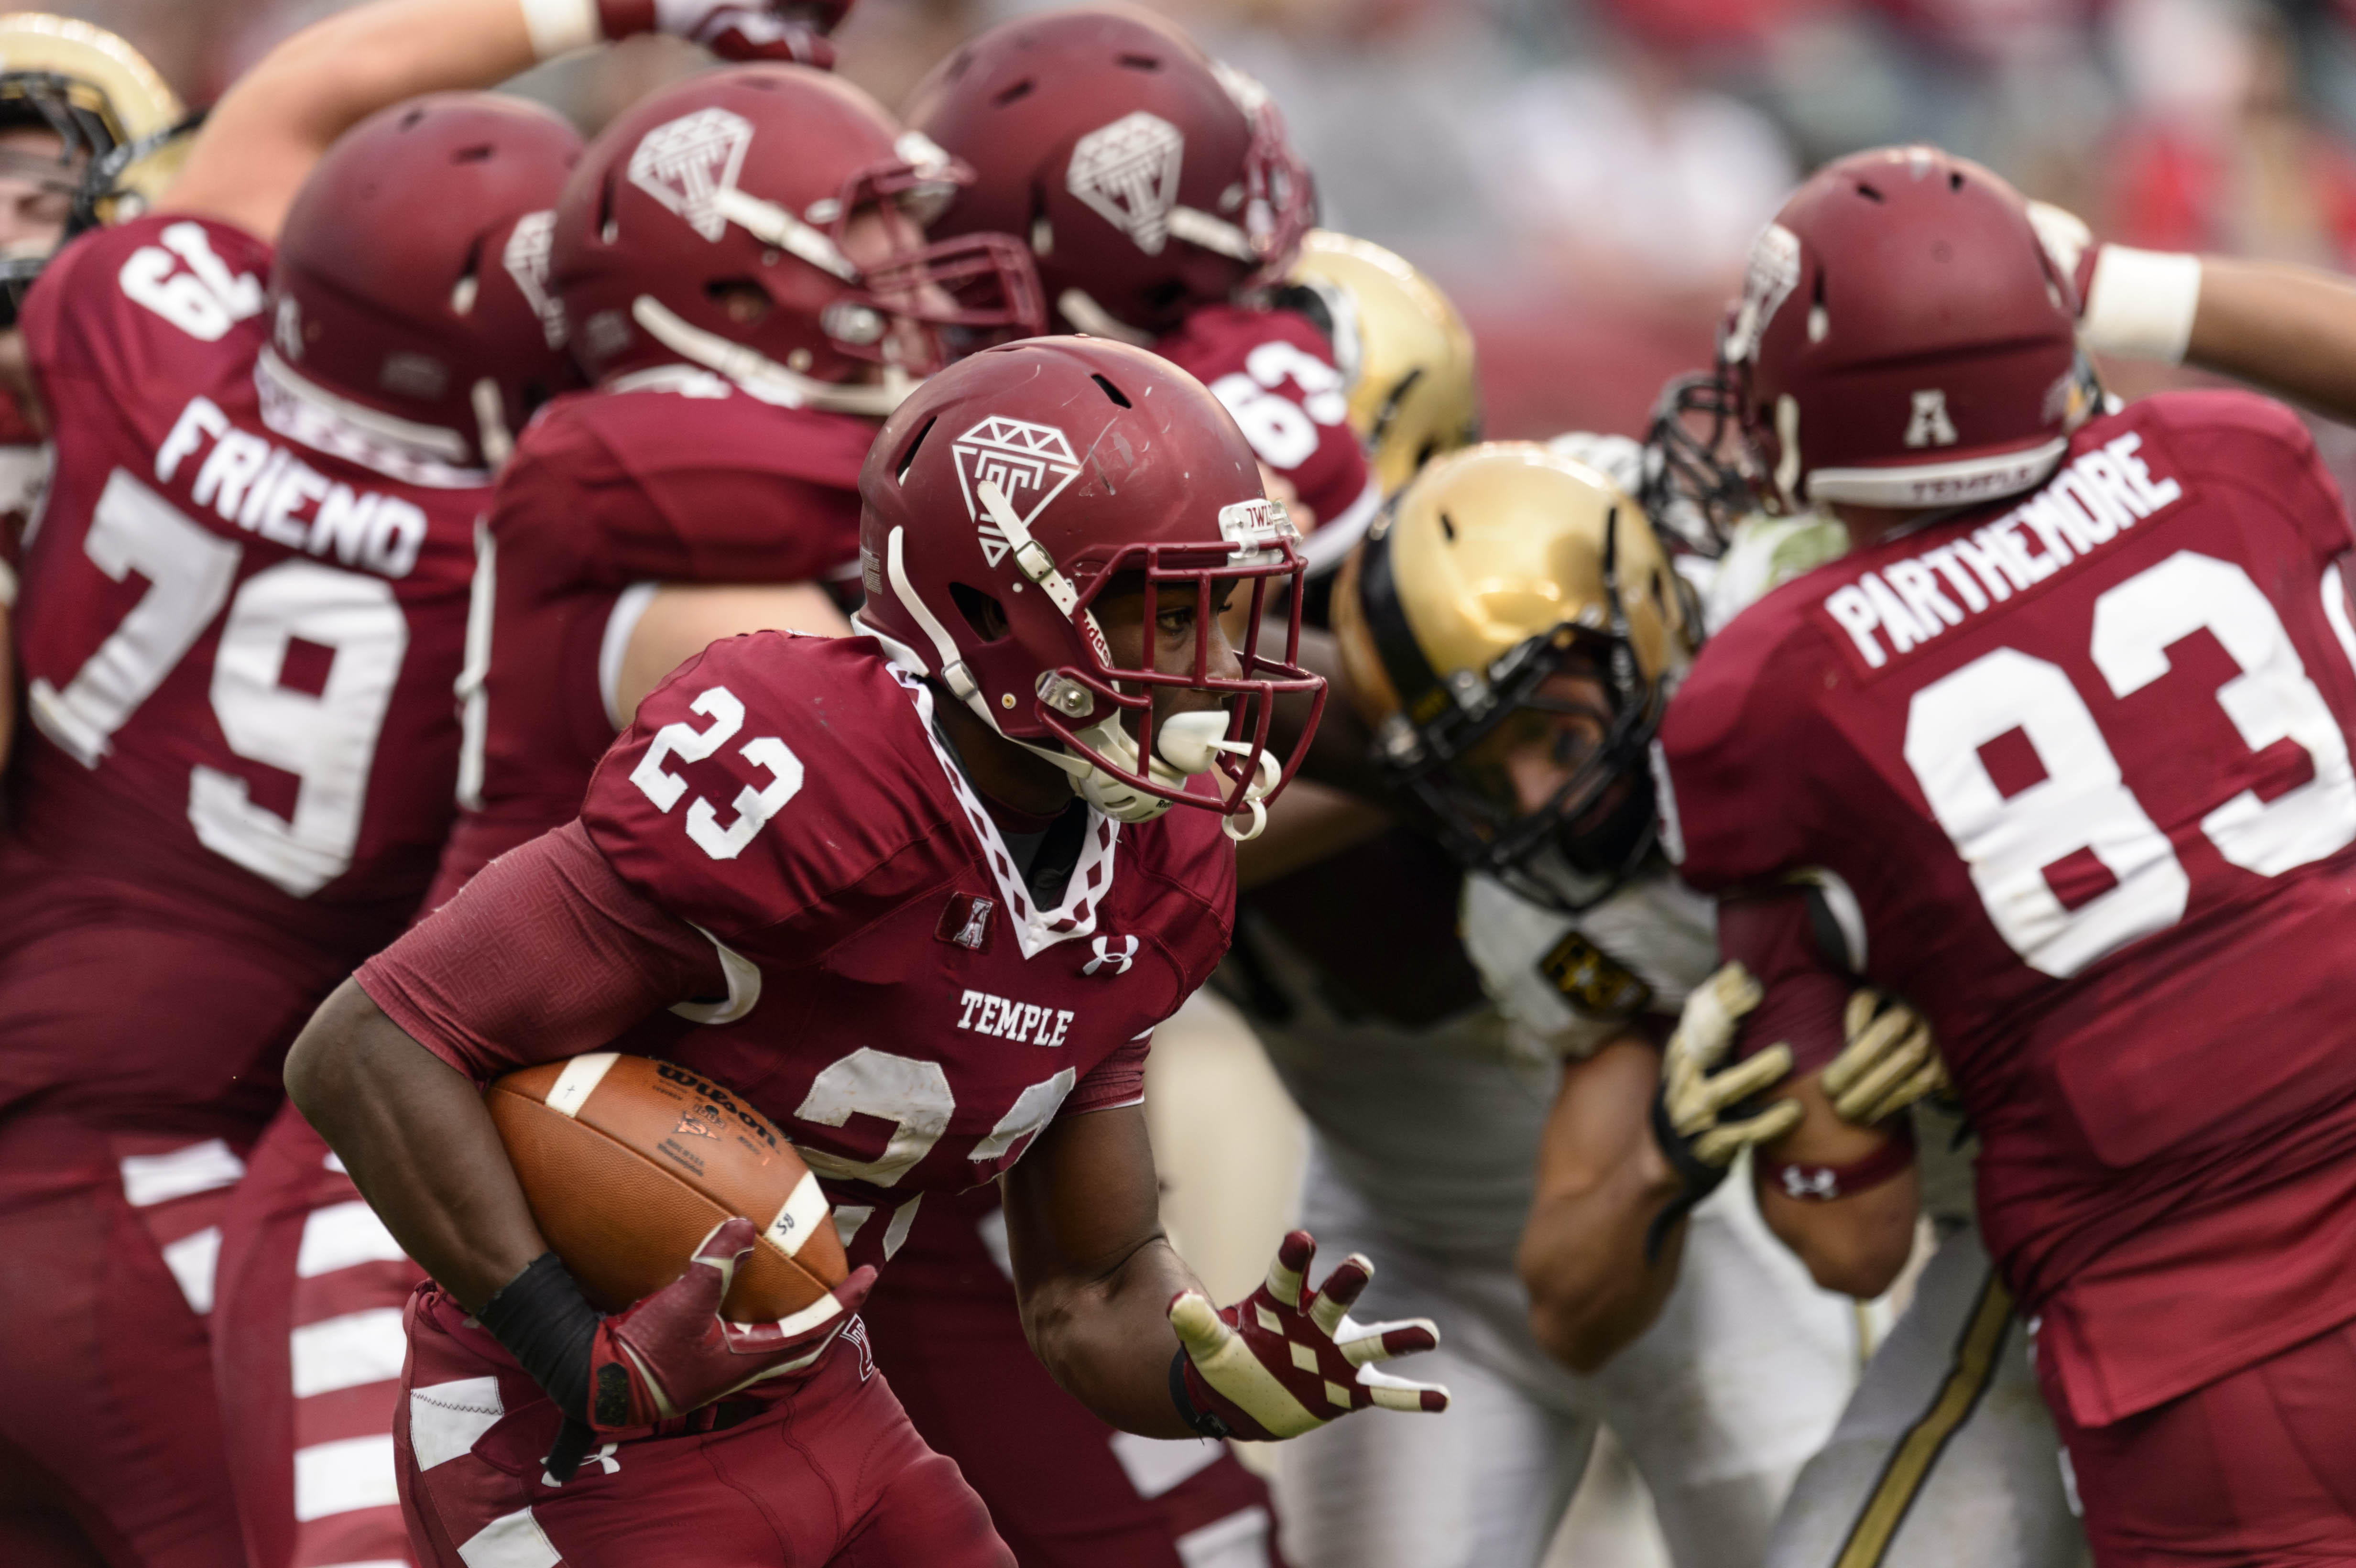 Oct 19, 2013; Philadelphia, PA, USA; Temple Owls running back Zaire Williams (23) carries the ball during the fourth quarter against the Army Black Knights at Lincoln Financial Field. Temple defeated Army 3-14. (Howard Smith-USA TODAY Sports)